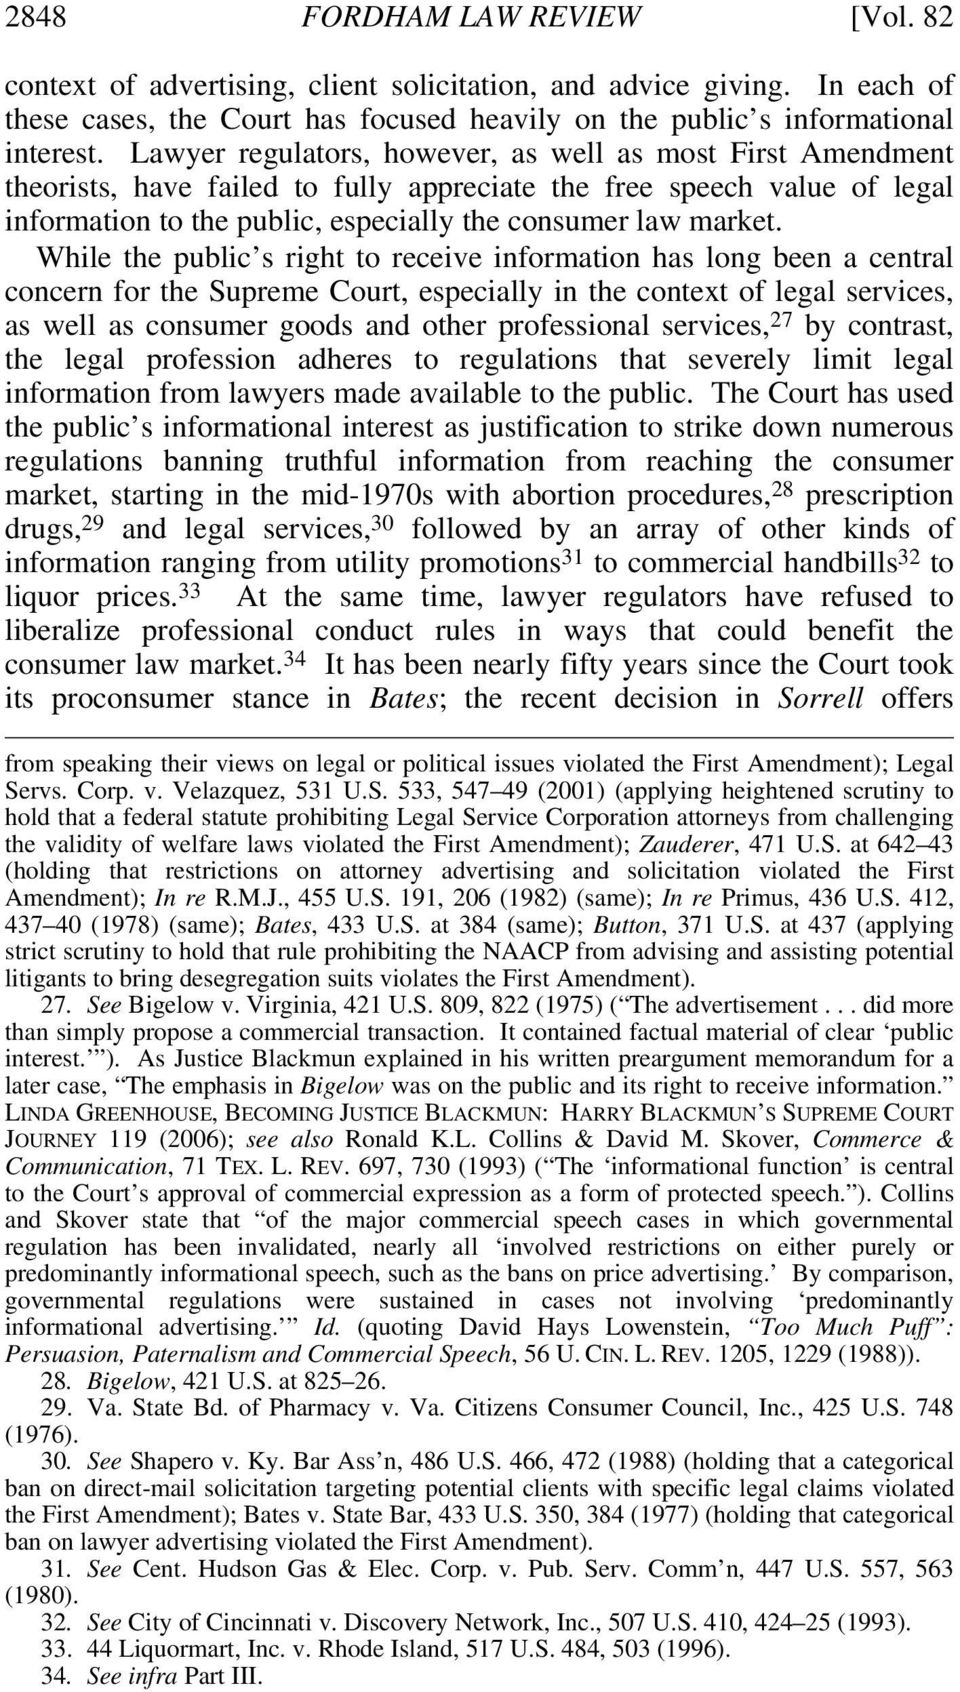 While the public s right to receive information has long been a central concern for the Supreme Court, especially in the context of legal services, as well as consumer goods and other professional